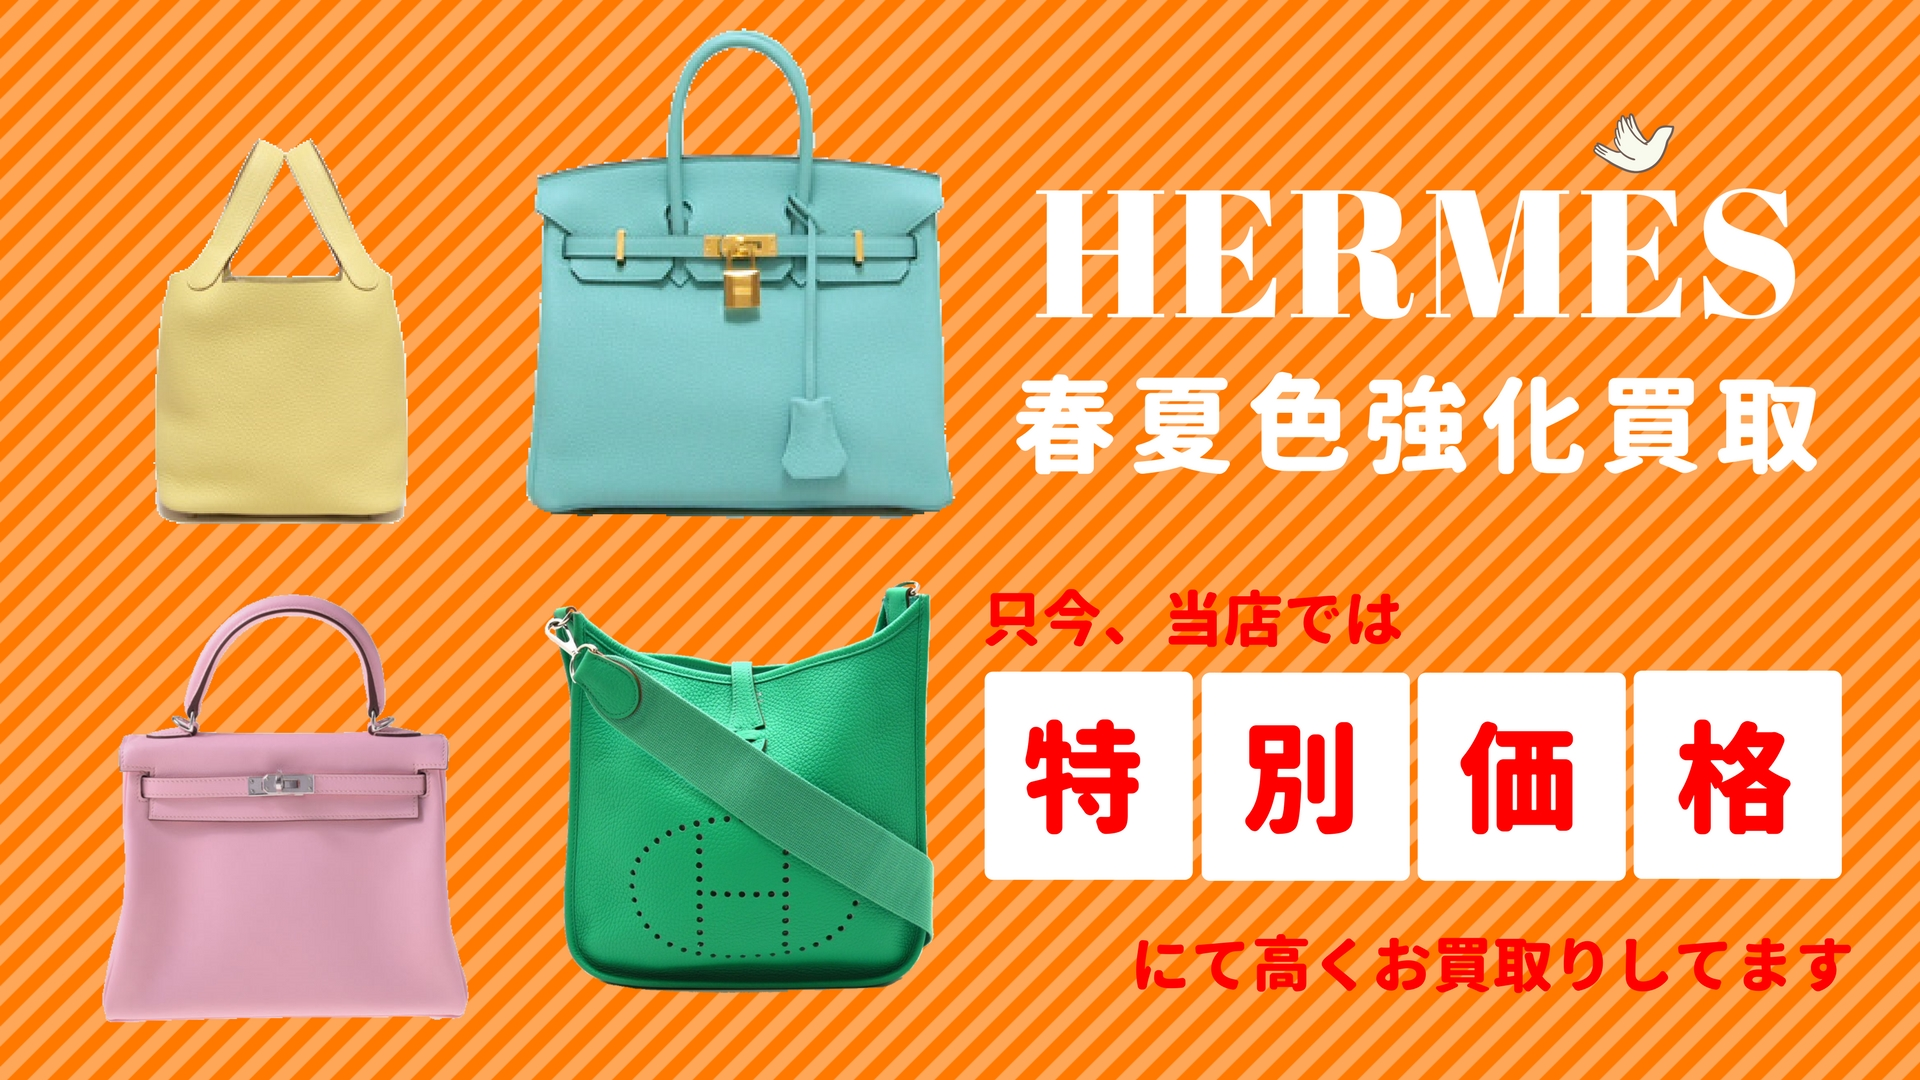 HERMES高く買う